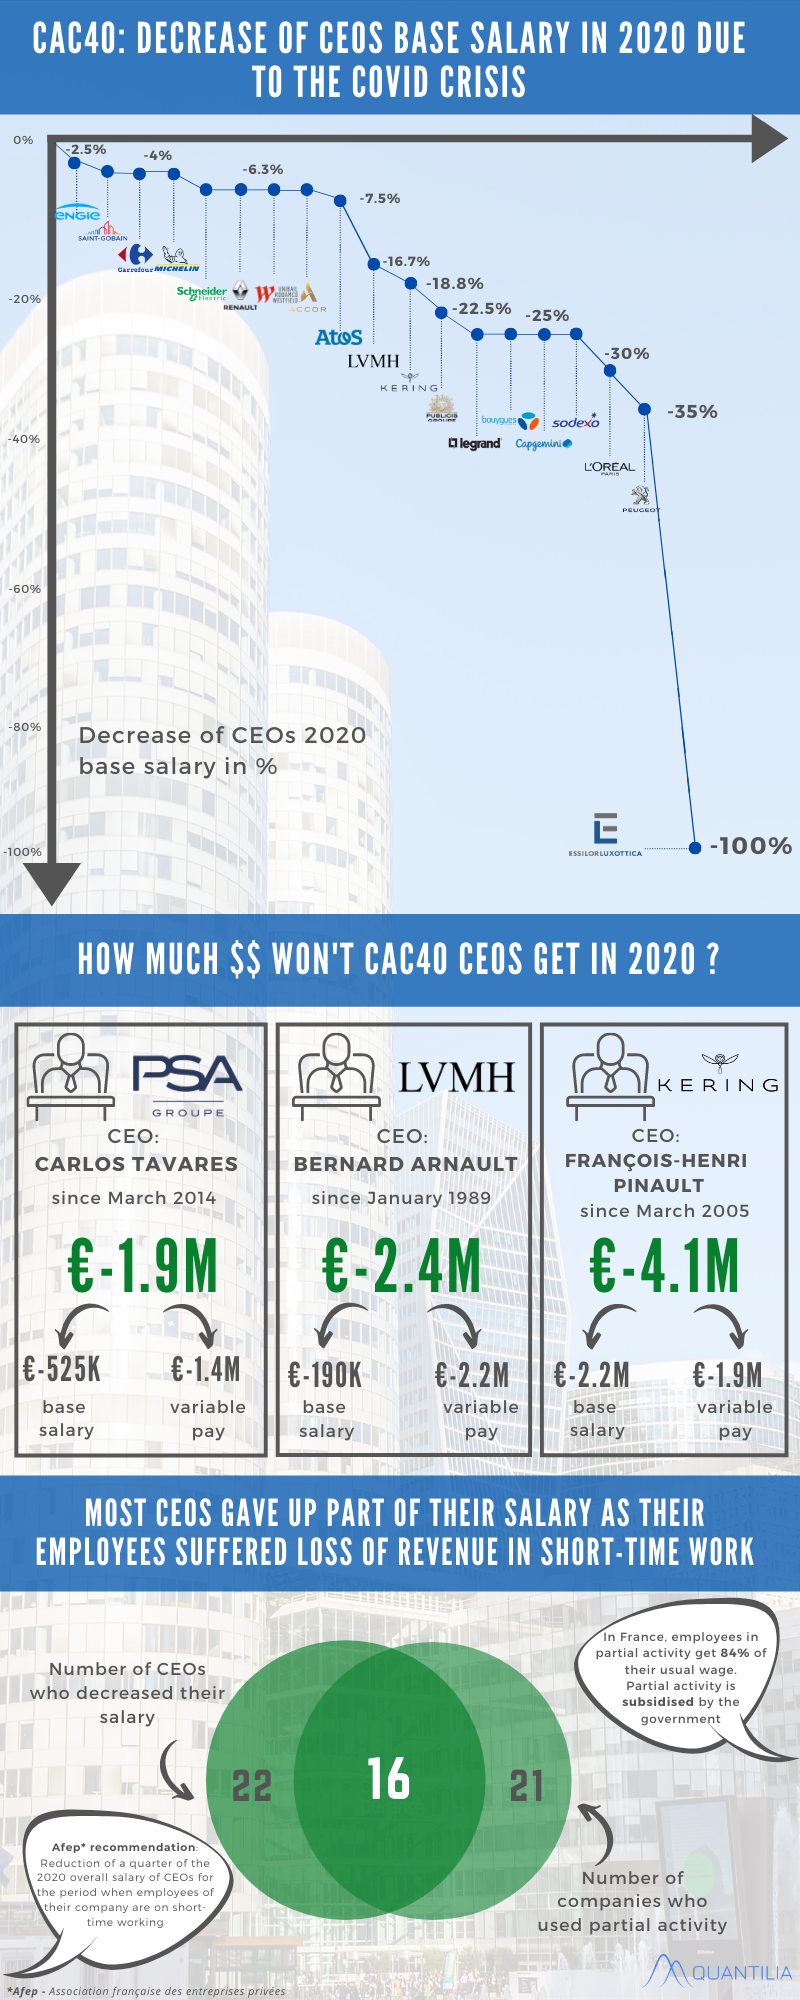 Half of CAC 40 CEOs give up part of their 2020 salary